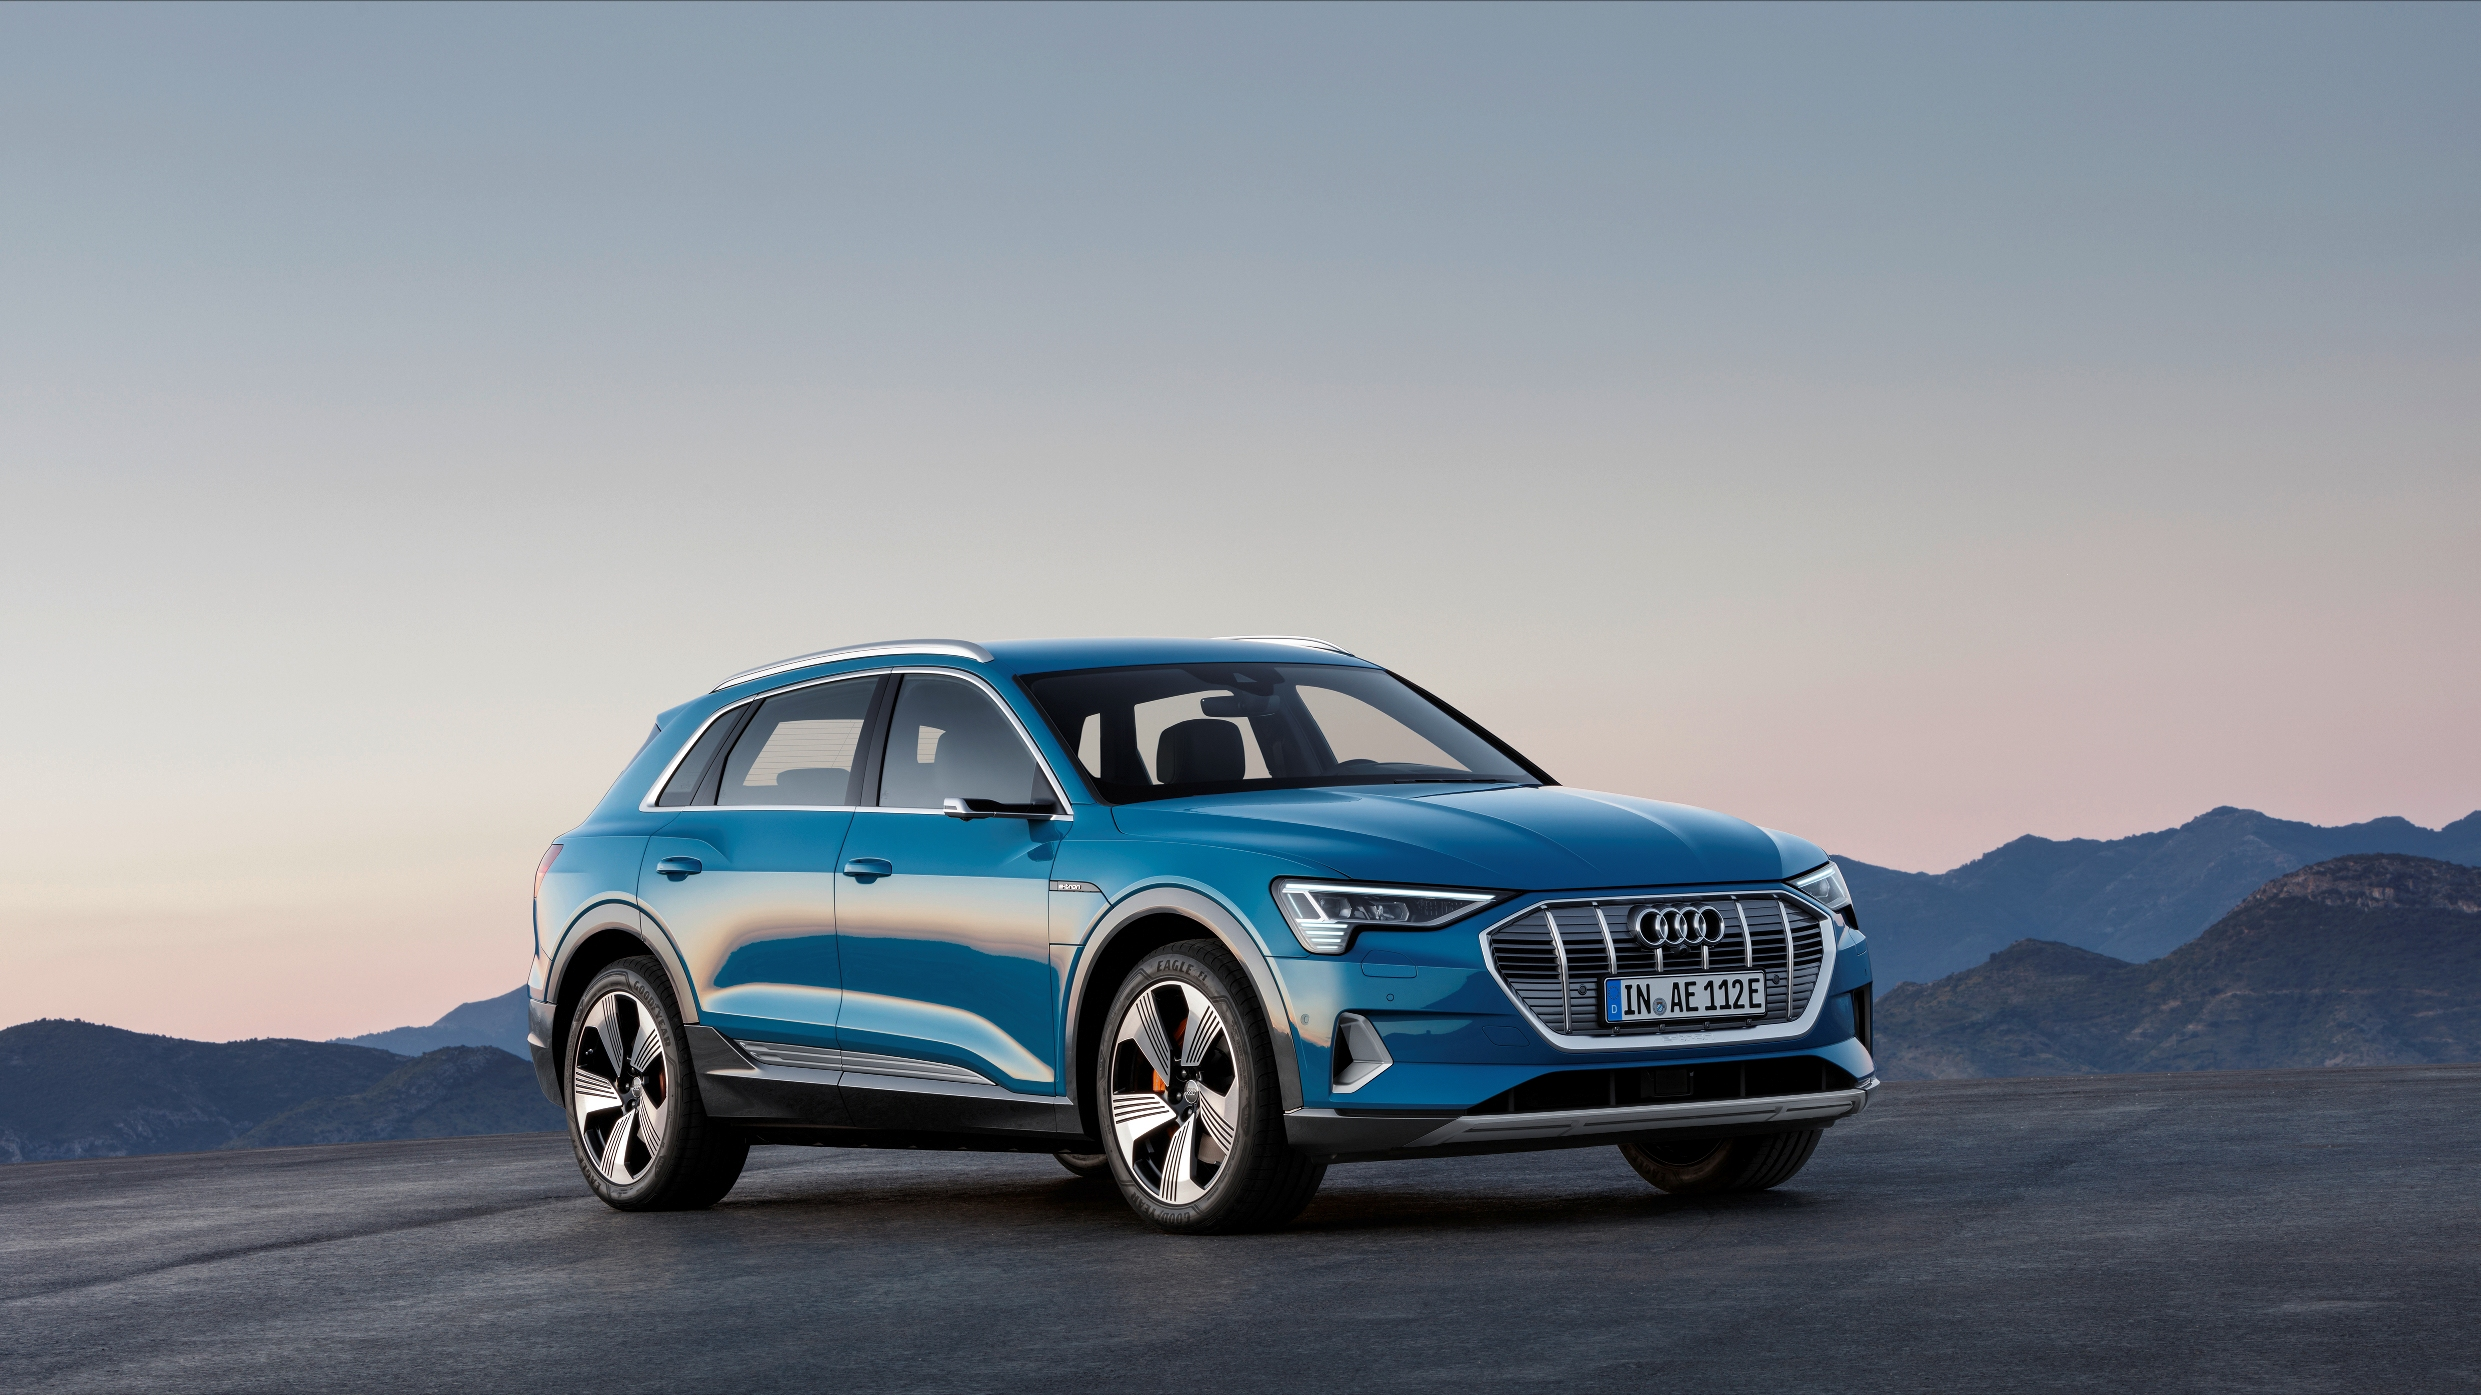 audi reveals new e-tron quattro electric car in san francisco